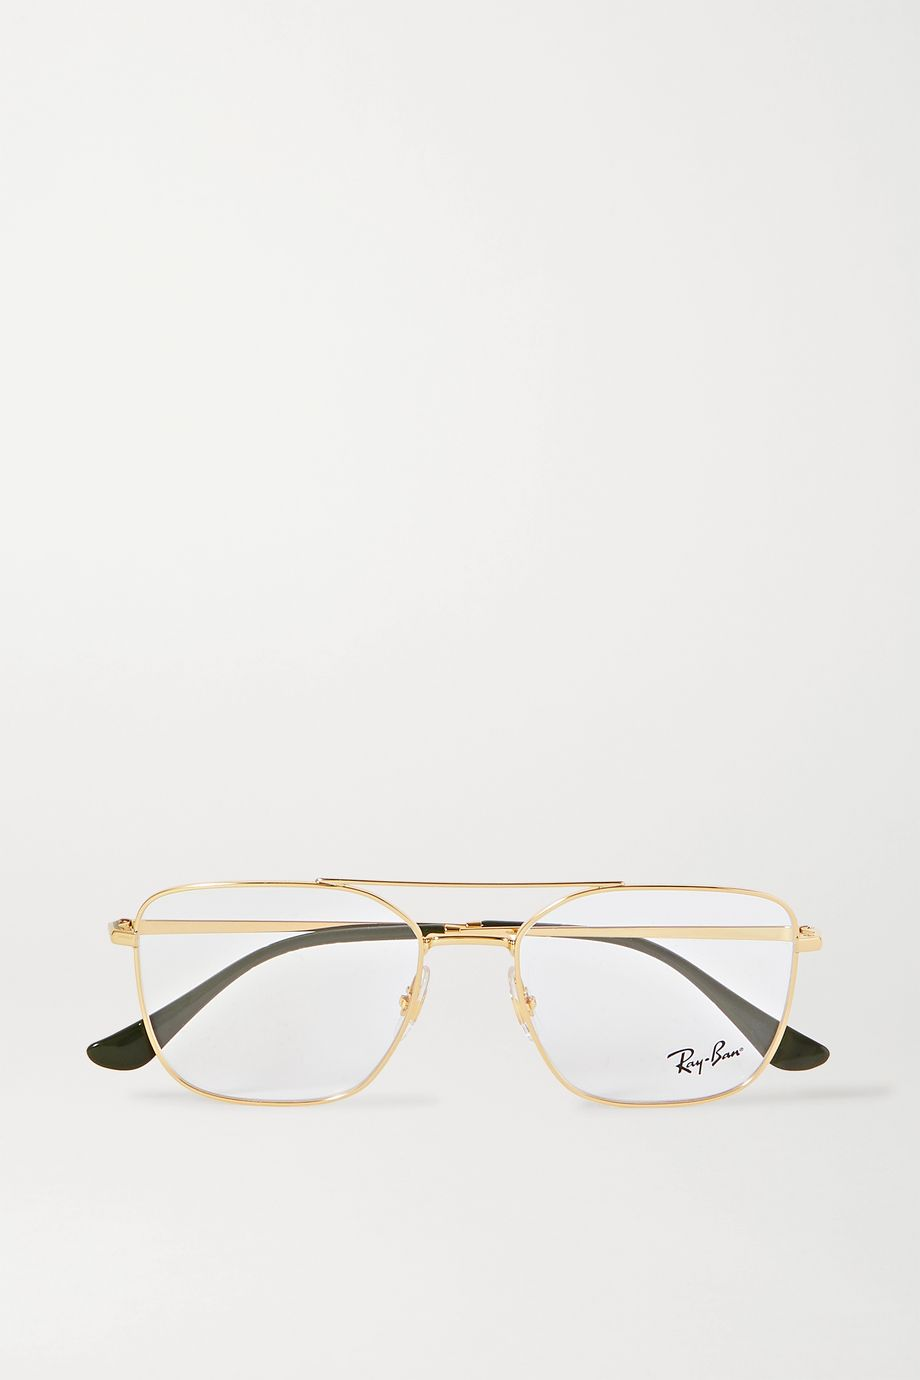 Ray-Ban Aviator gold-tone optical glasses